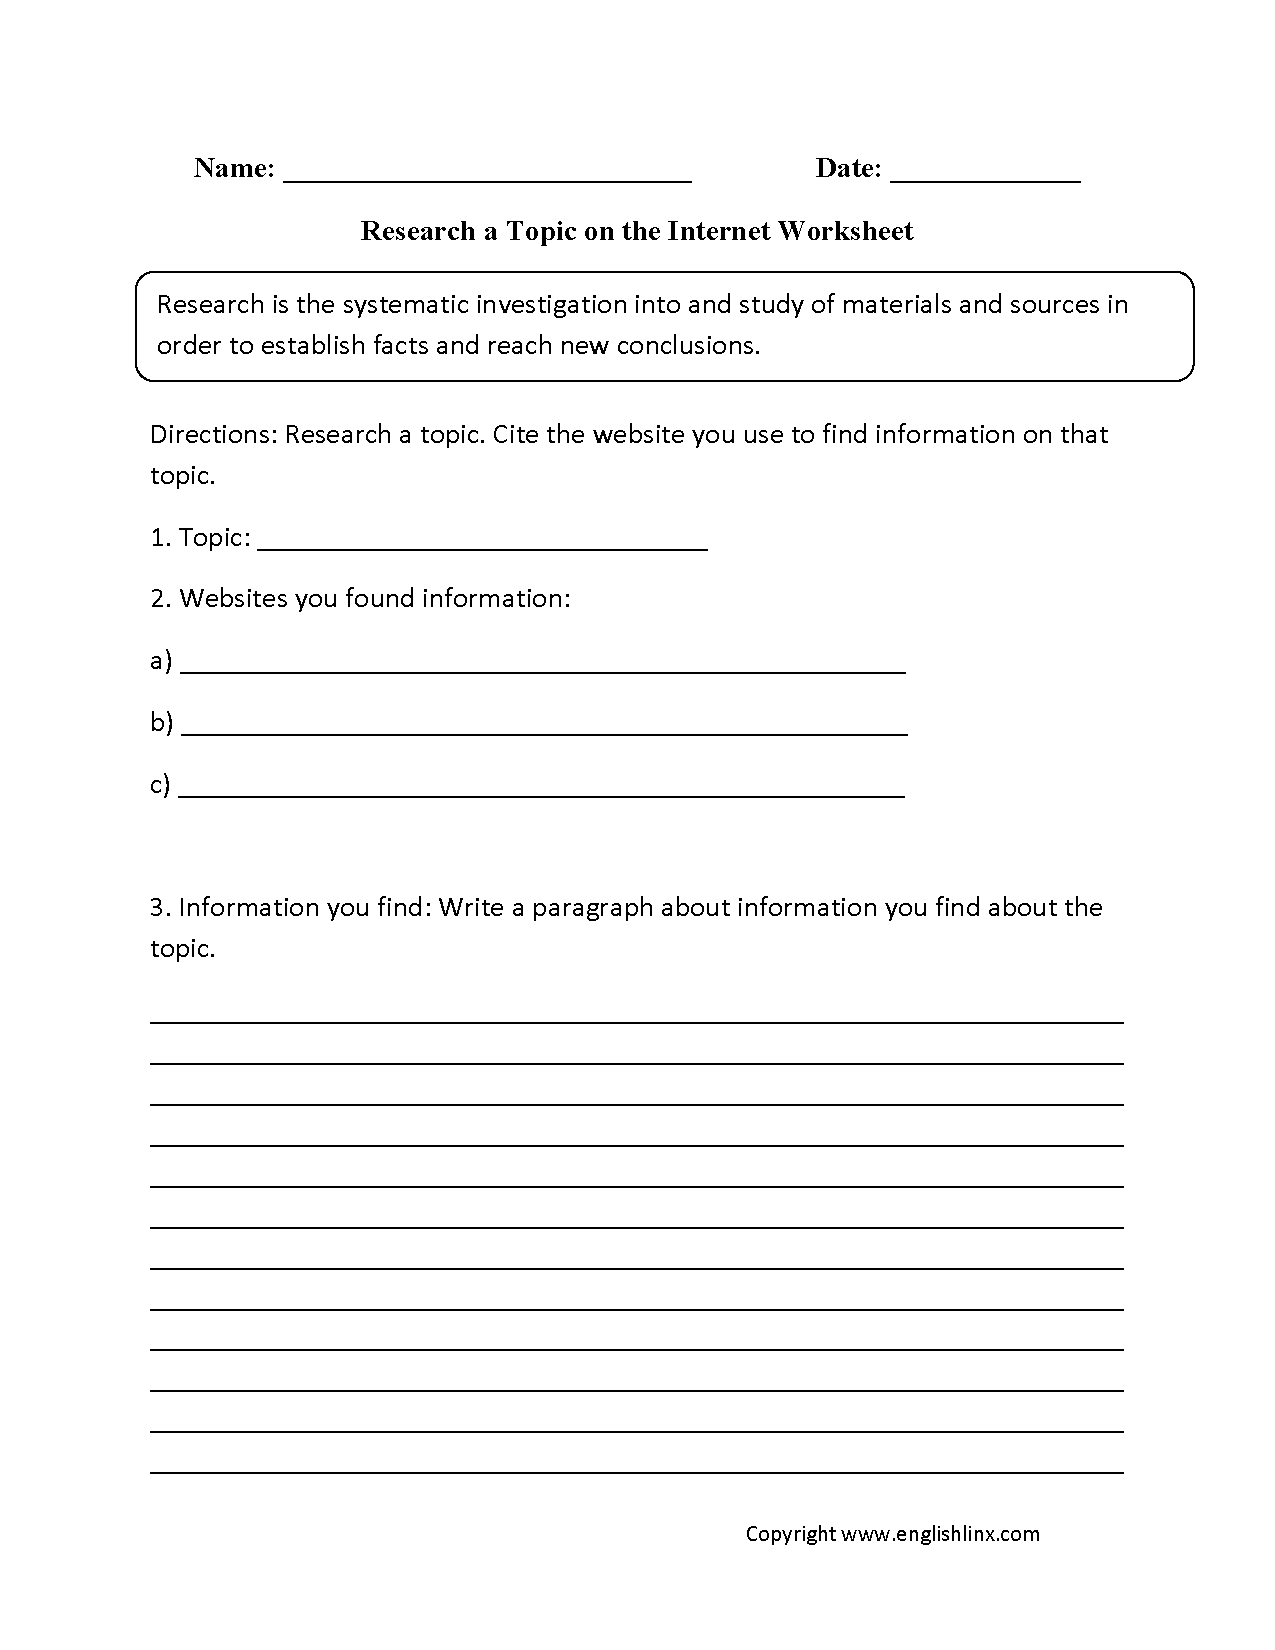 Aldiablosus  Picturesque Englishlinxcom  Research Worksheets With Outstanding On The Internet Worksheet With Cool Reflections Math Worksheet Also Algebra Linear Equations Worksheet In Addition Passover Worksheets And Math Grade  Worksheets As Well As Spanish Greetings Worksheets Additionally Nd Grade Reading Worksheets Free Printable From Englishlinxcom With Aldiablosus  Outstanding Englishlinxcom  Research Worksheets With Cool On The Internet Worksheet And Picturesque Reflections Math Worksheet Also Algebra Linear Equations Worksheet In Addition Passover Worksheets From Englishlinxcom